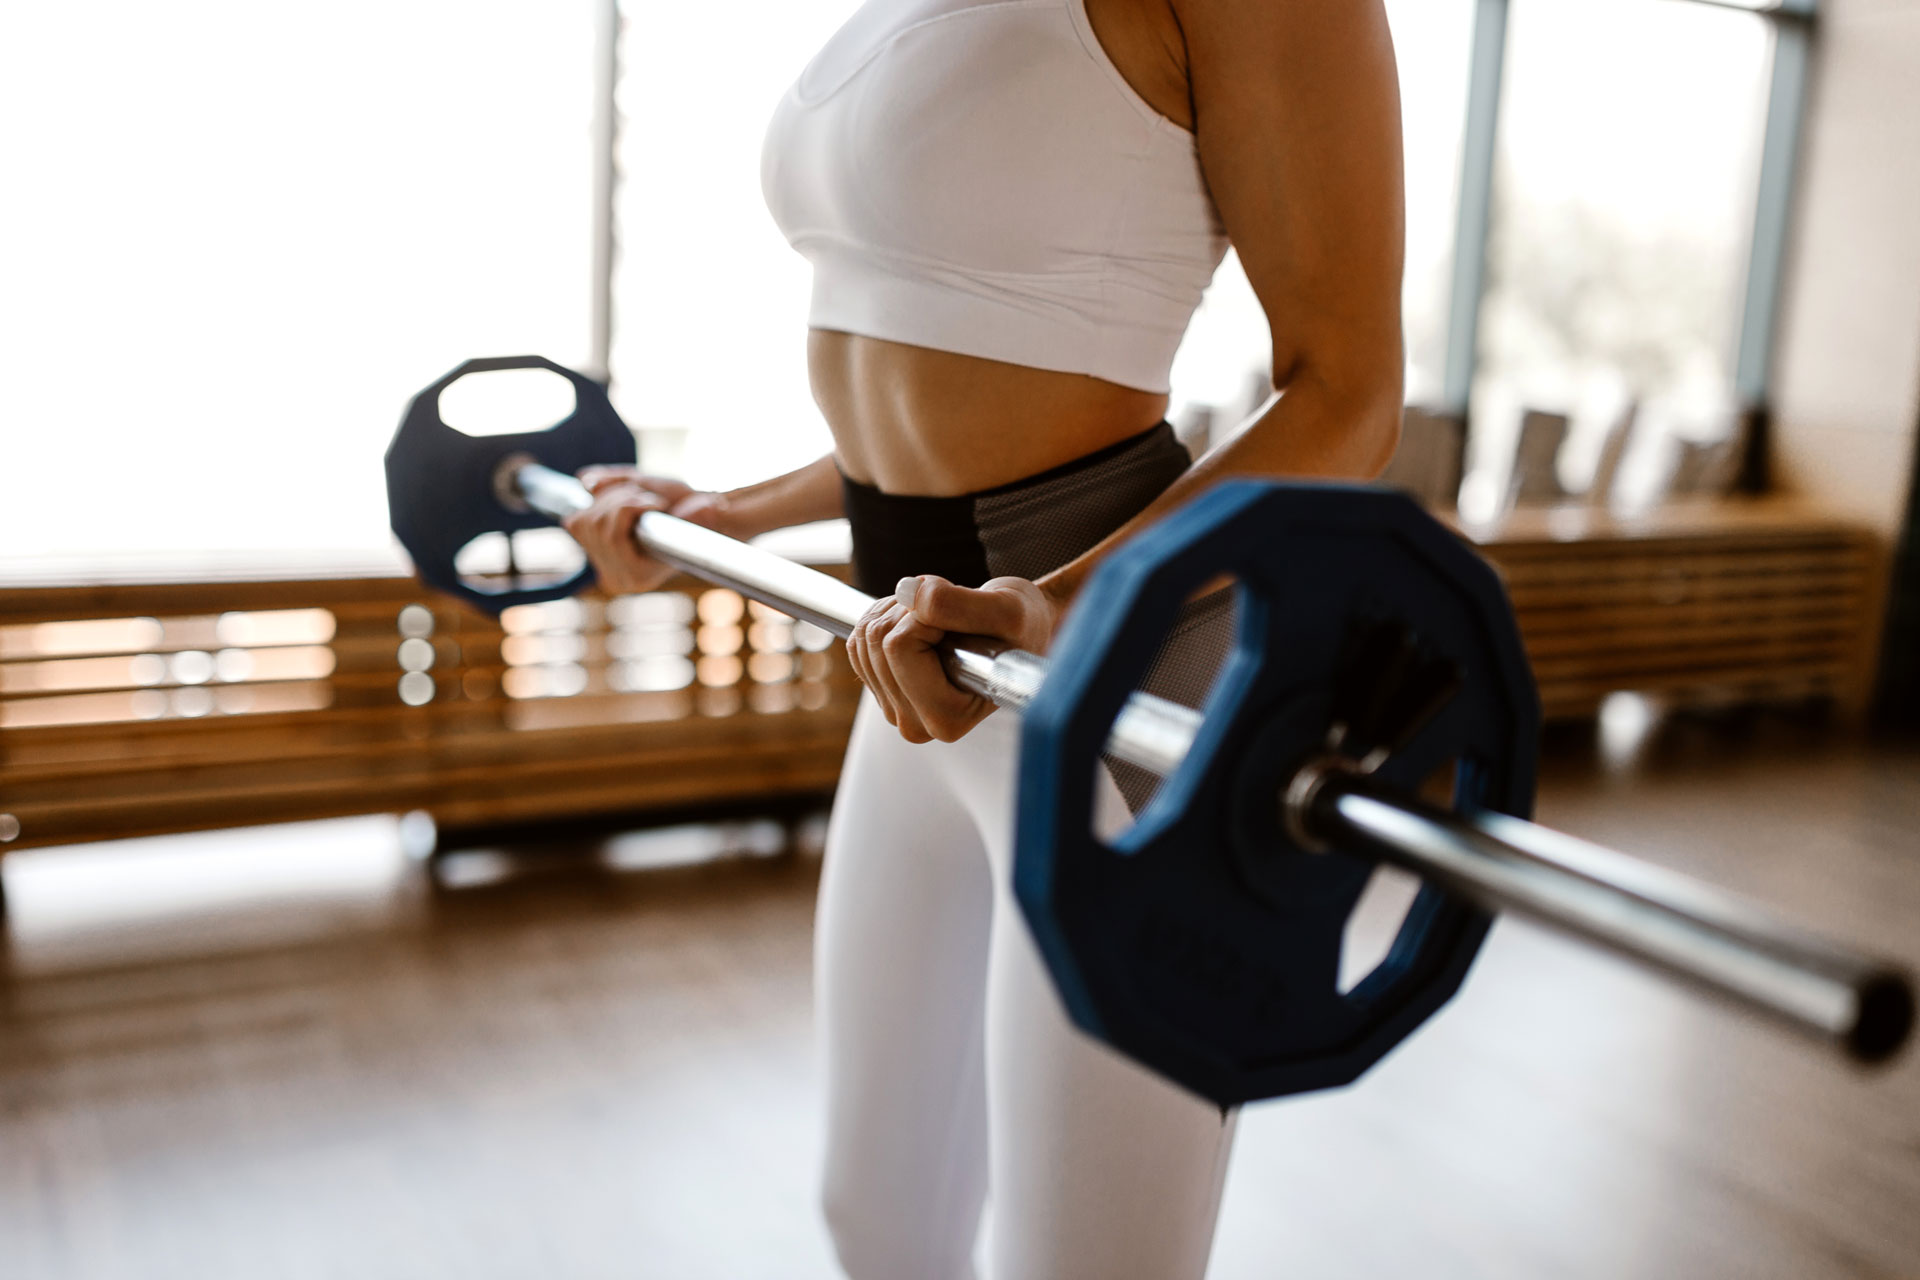 athletic-girl-dressed-in-white-sports-top-and-tigh-UB2DFXZ.jpg